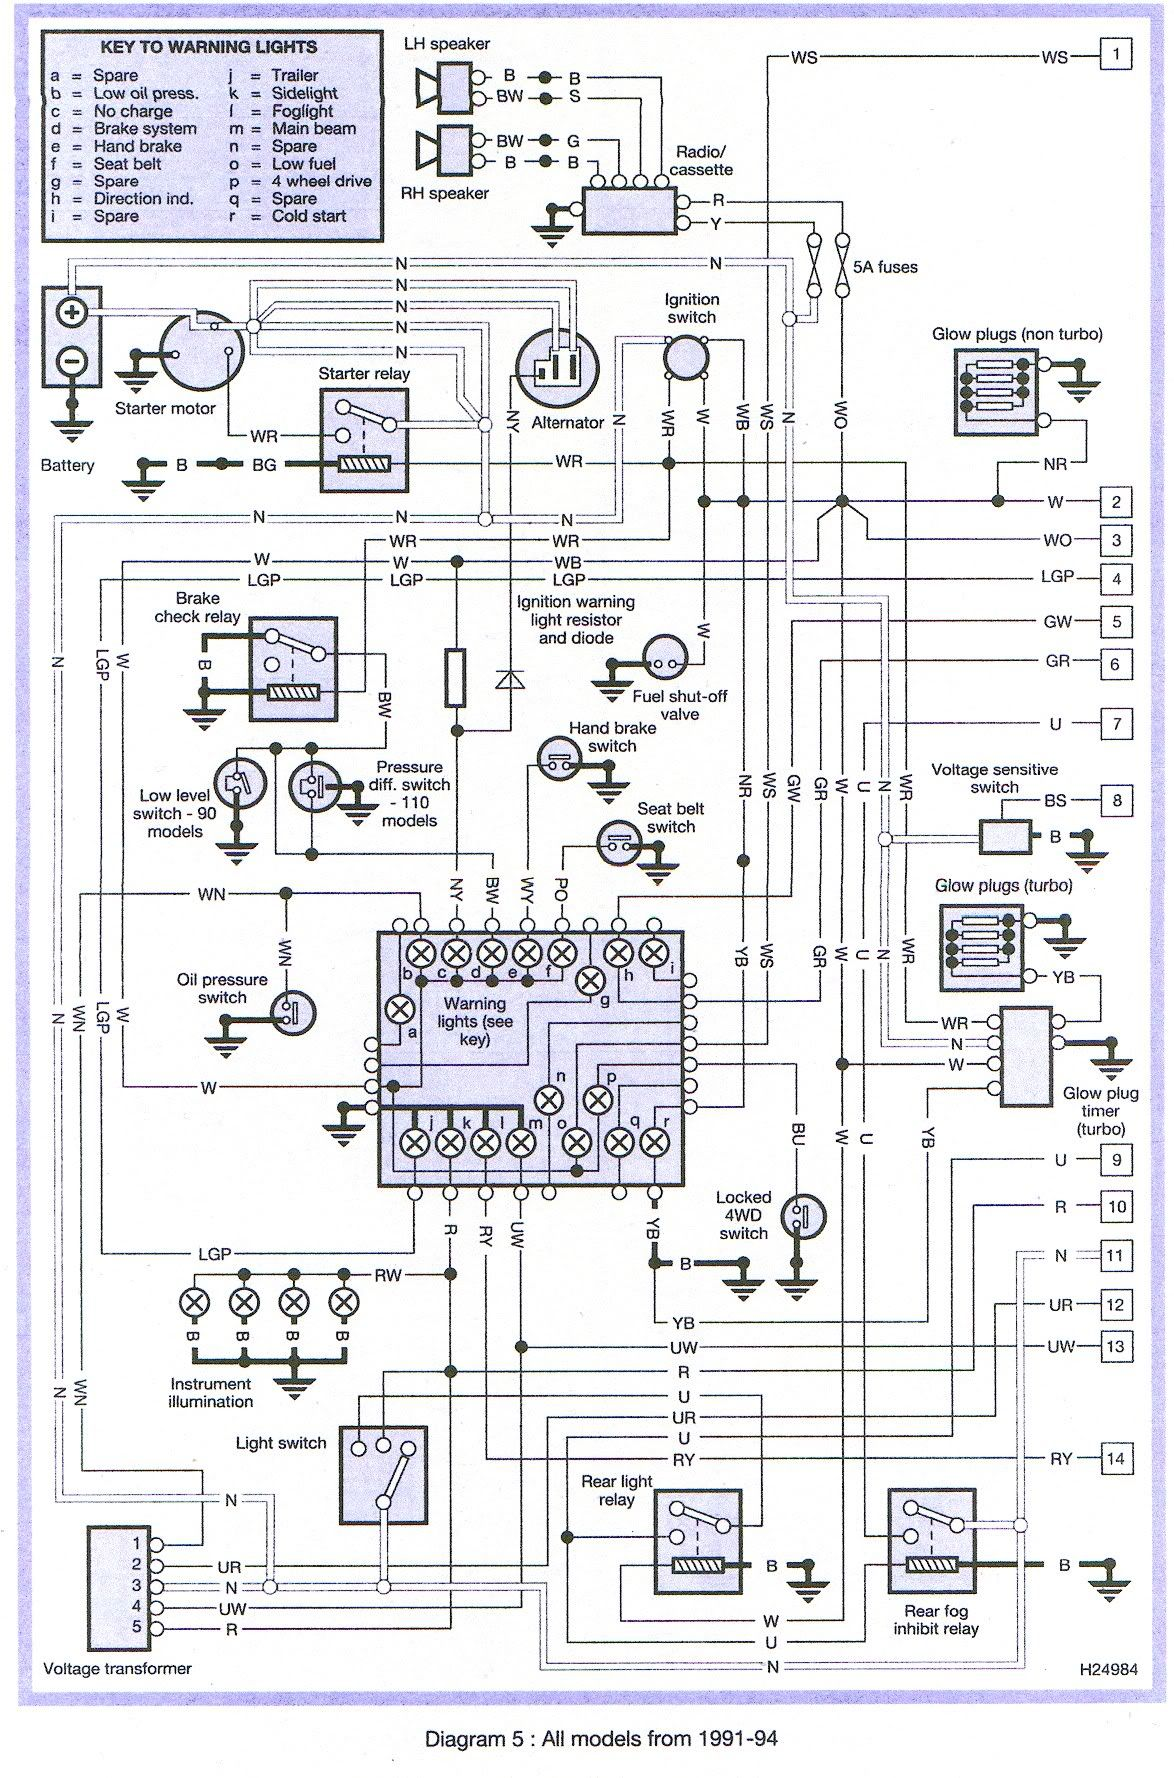 07629544bfff38ad2881b2c21312c6e6 land rover discovery wiring diagram manual repair with engine Land Rover Discovery 1 at metegol.co